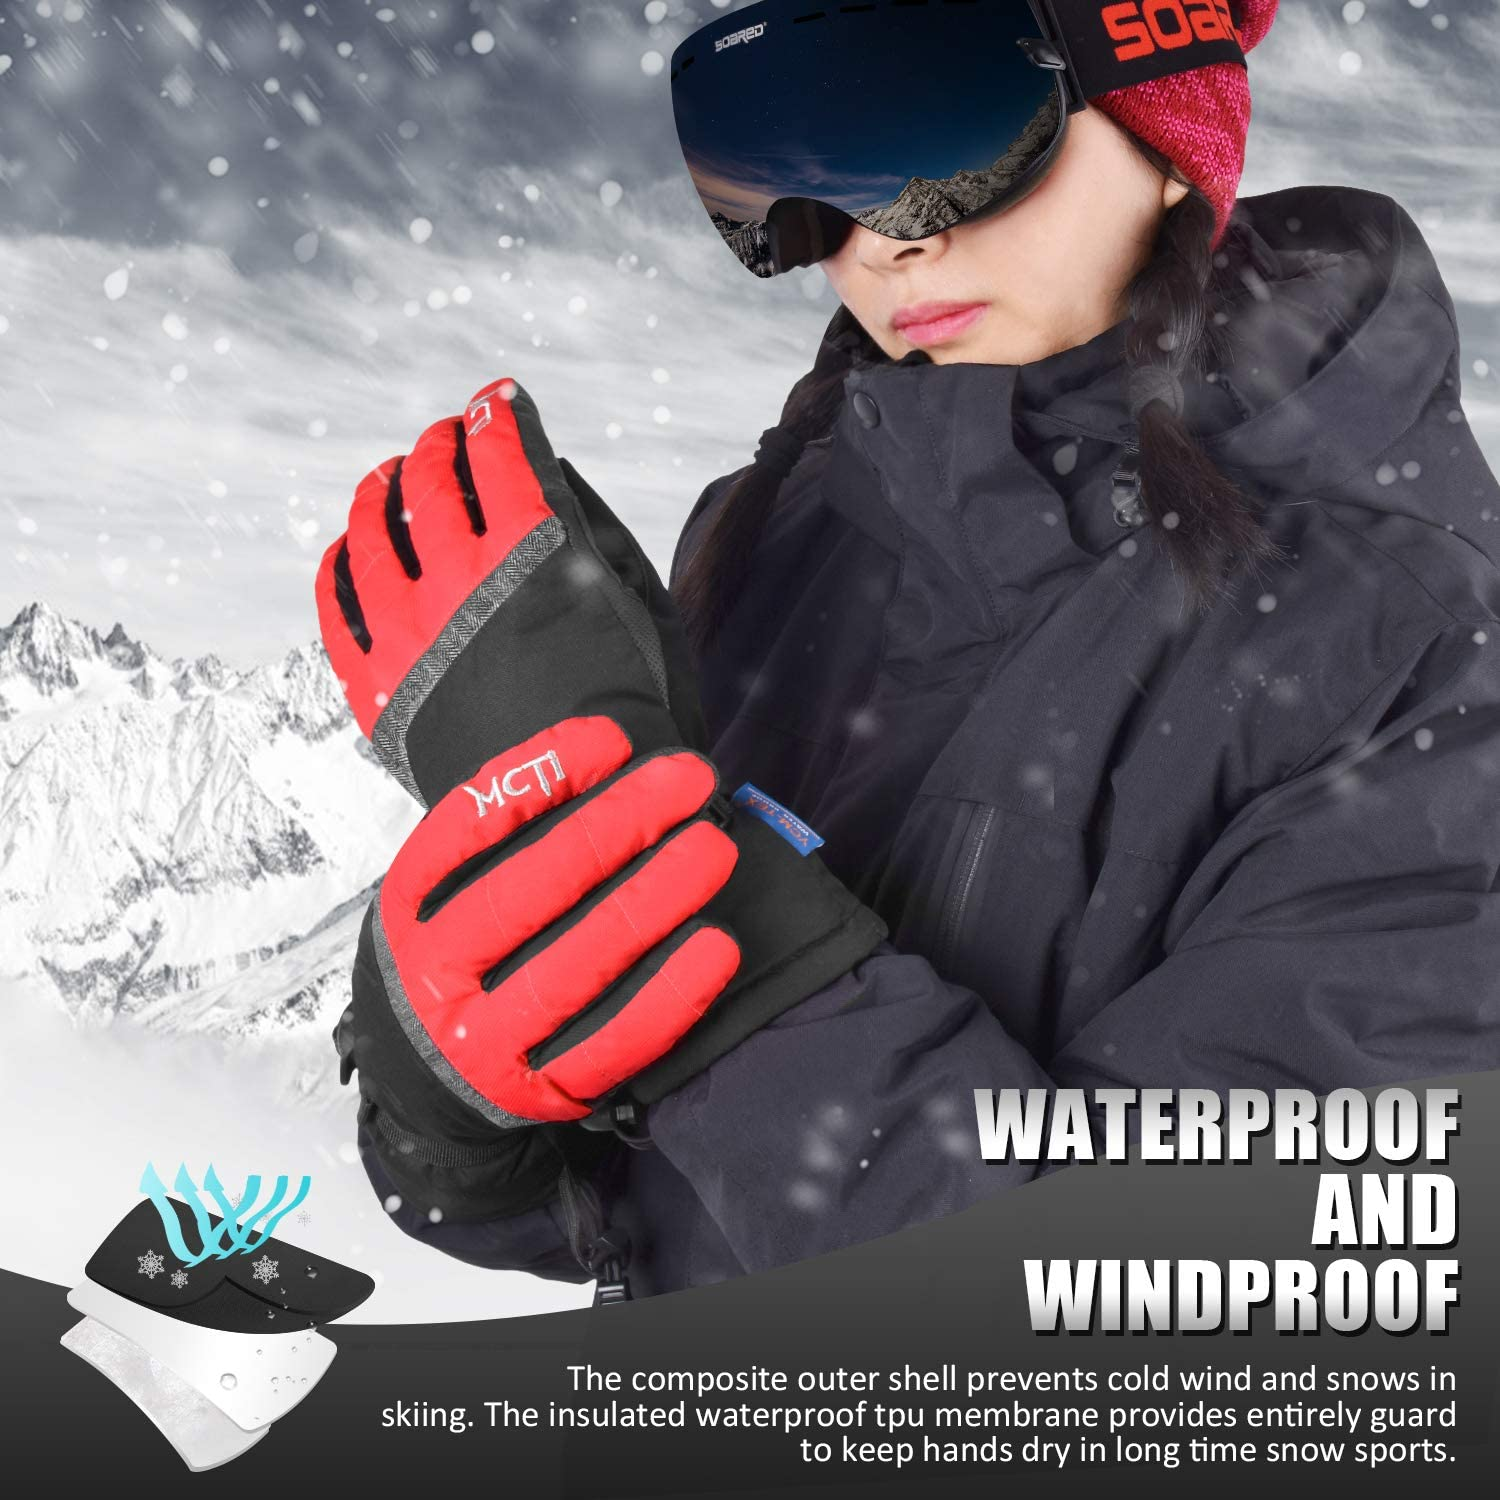 MCTi Ski Gloves, Winter Waterproof Snowboard Snow 3M Thinsulate Warm Touchscreen Cold Weather Women Gloves Wrist Leashes : Clothing